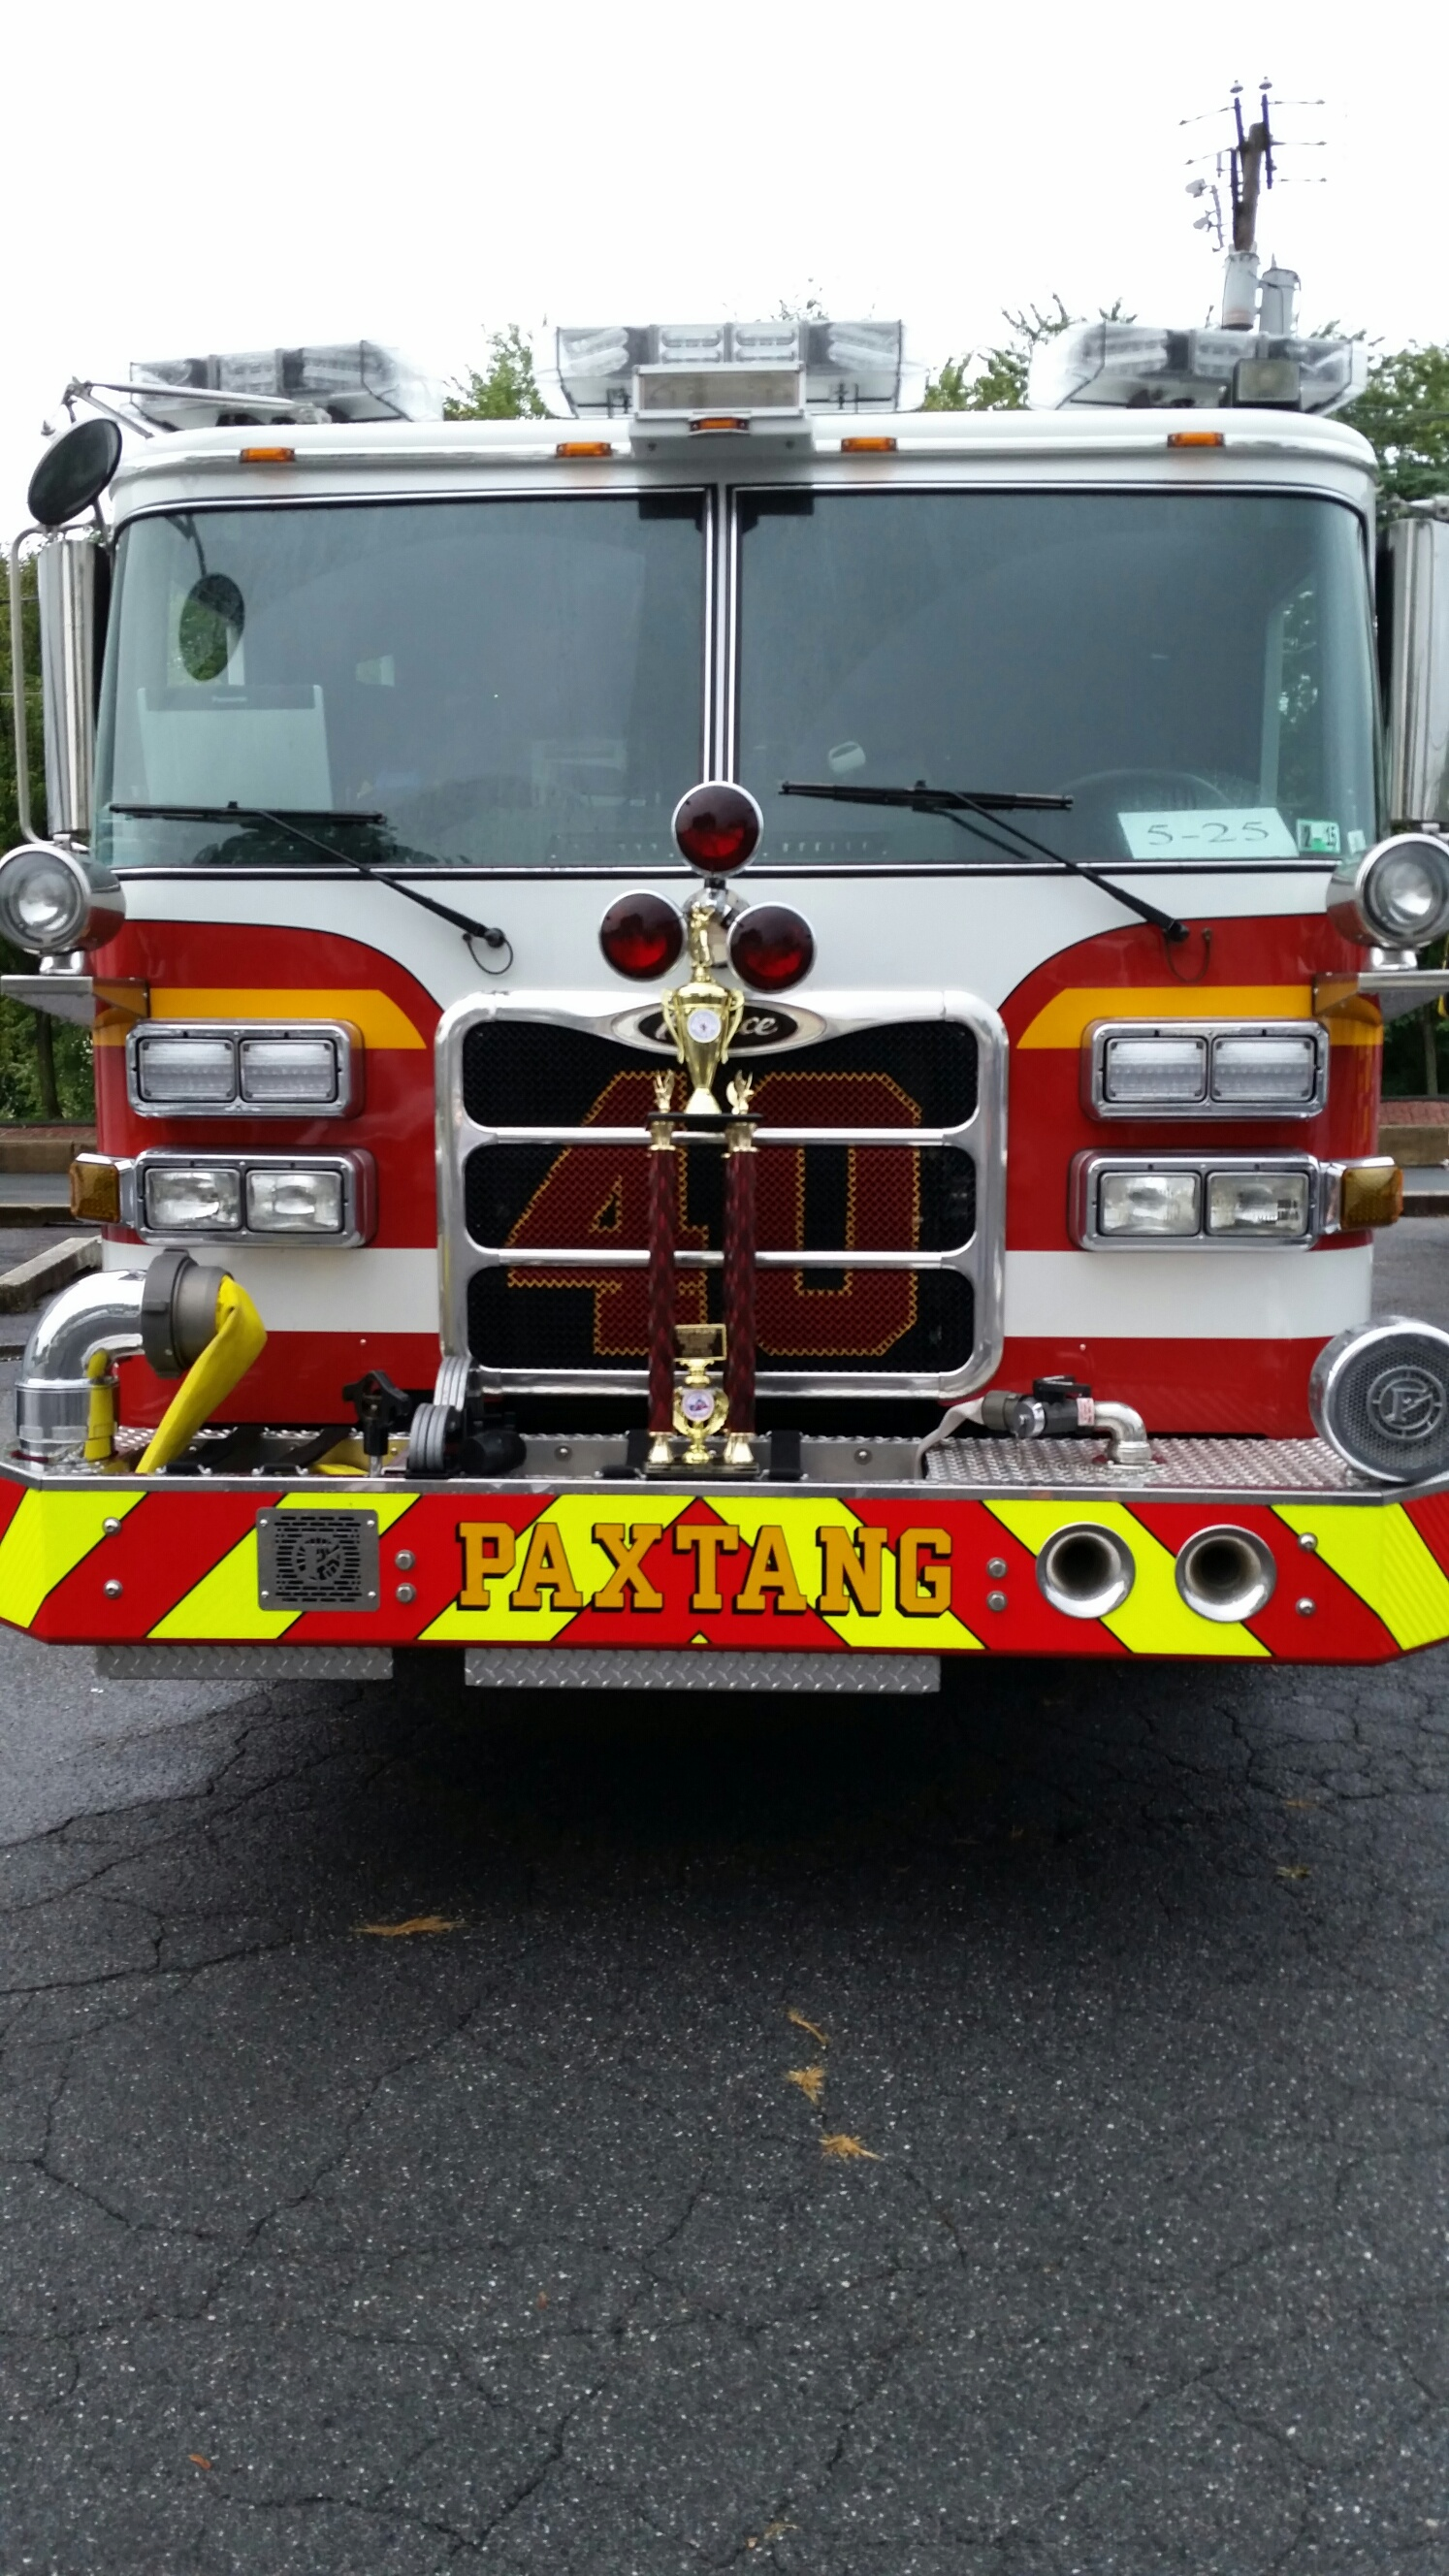 Paxtang Fire Company – Our Duty To Protect